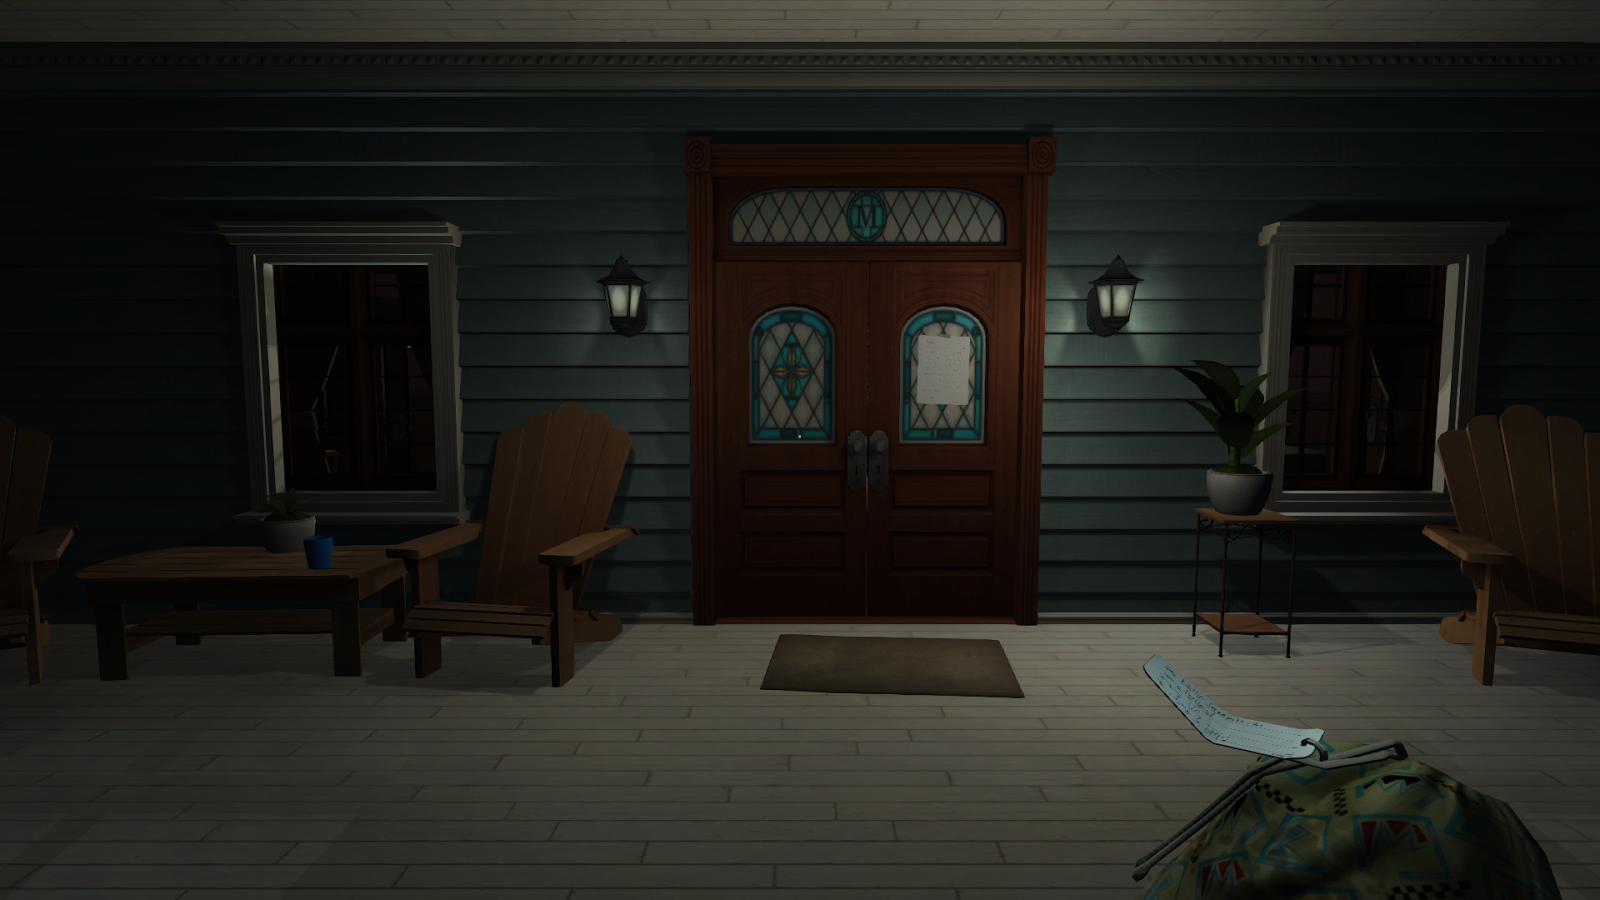 Gone Home shows that we all have a story to share